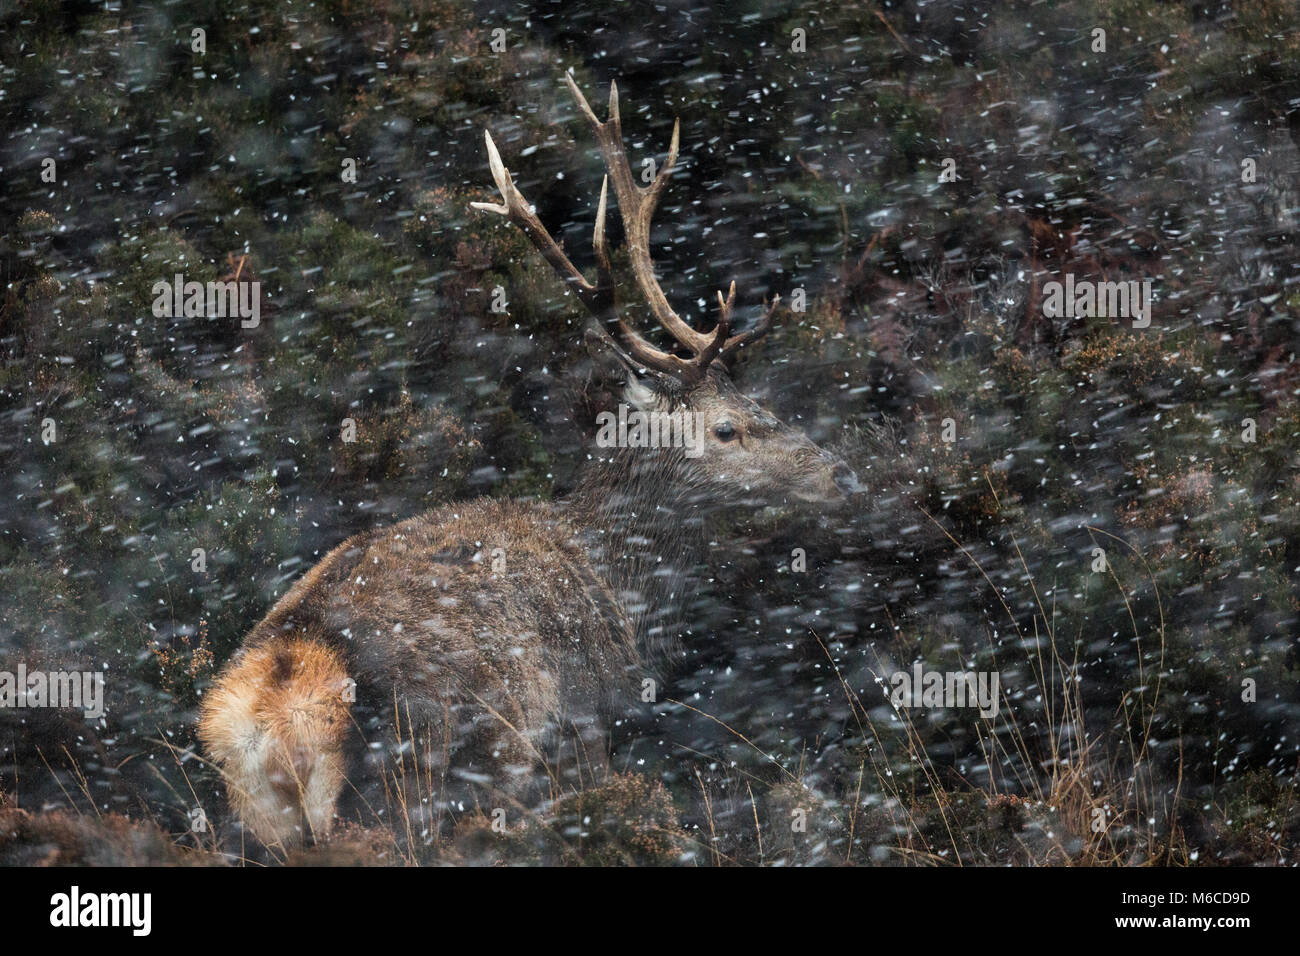 Red Deer stag in snow, Applecross, Scotland. - Stock Image